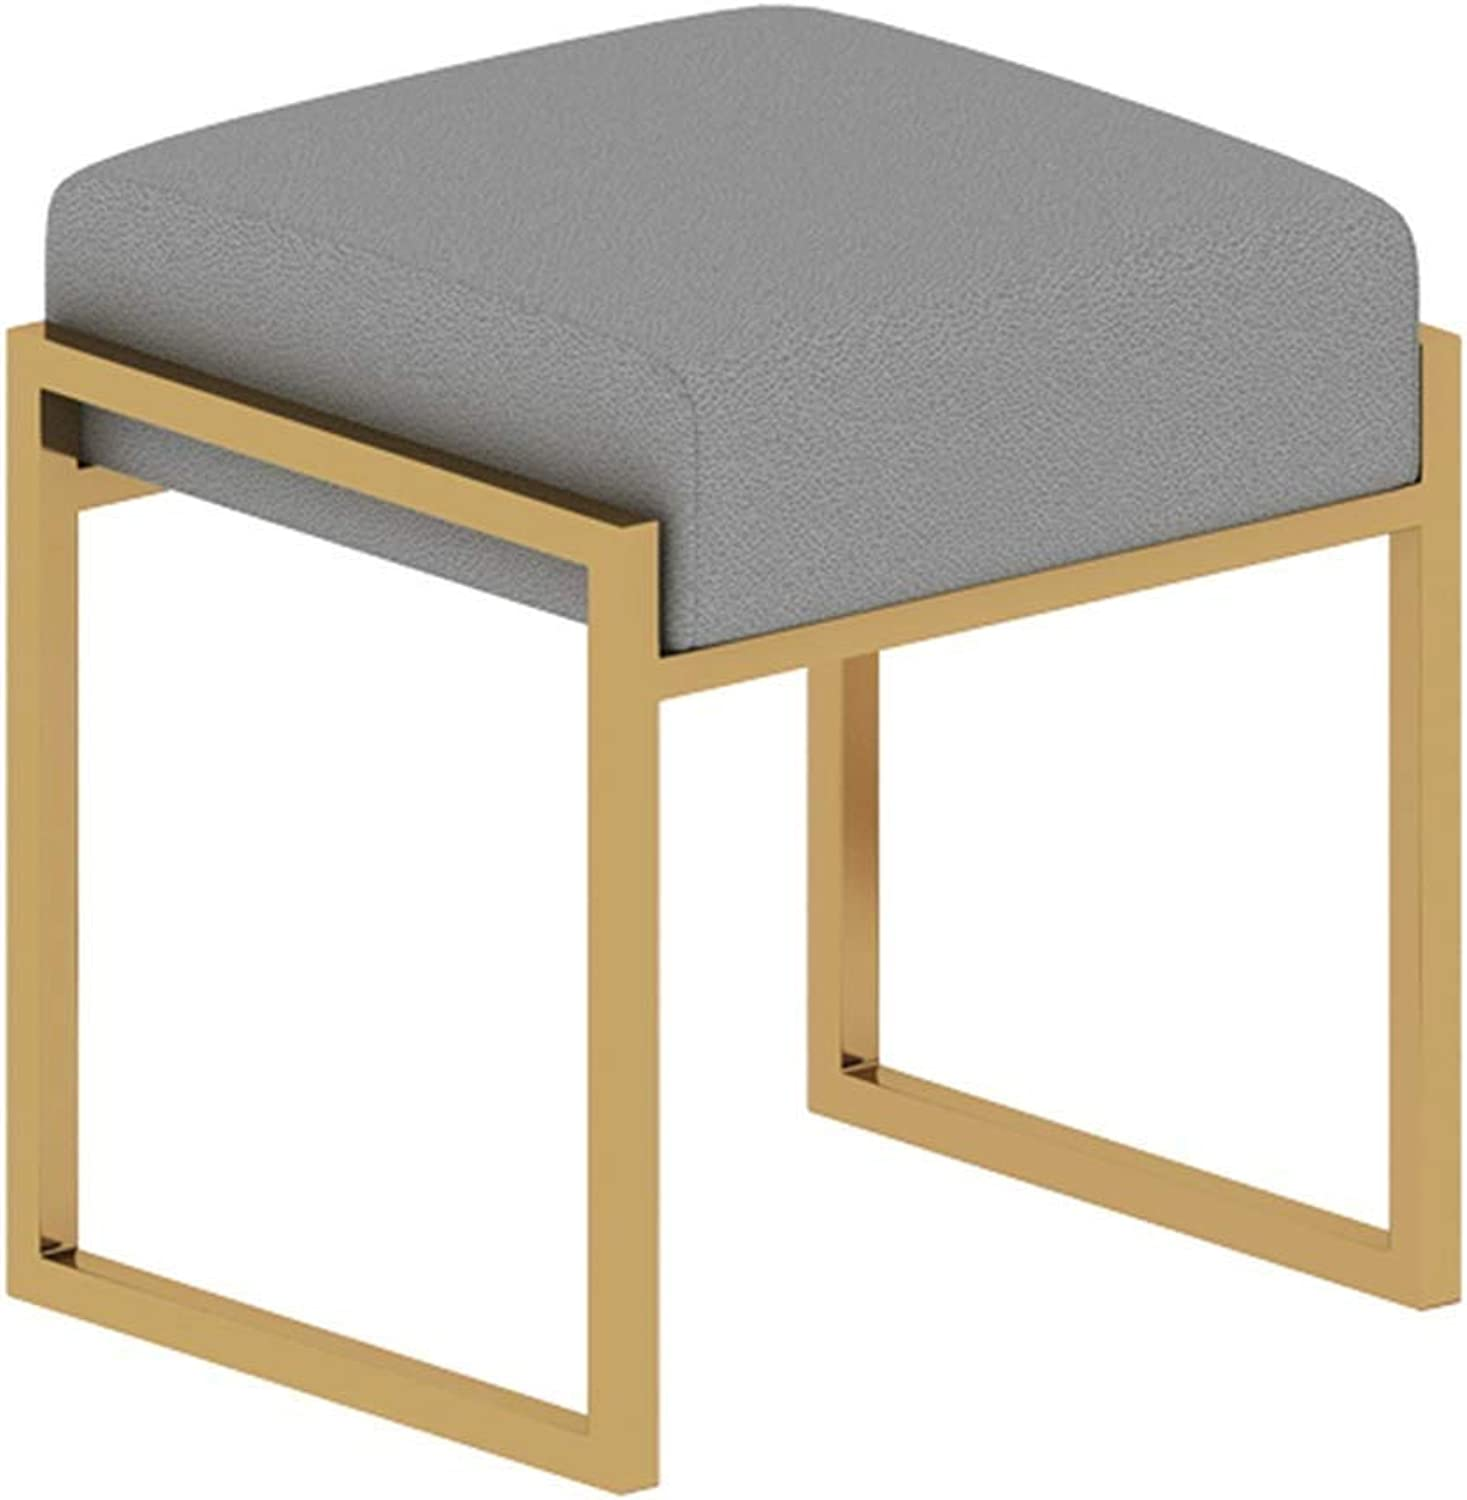 Metal Cloth Doorway Change shoes Bench Simple Bedroom Dressing Stool, 8 colors GFMING (color   G, Size   370x425x450mm)